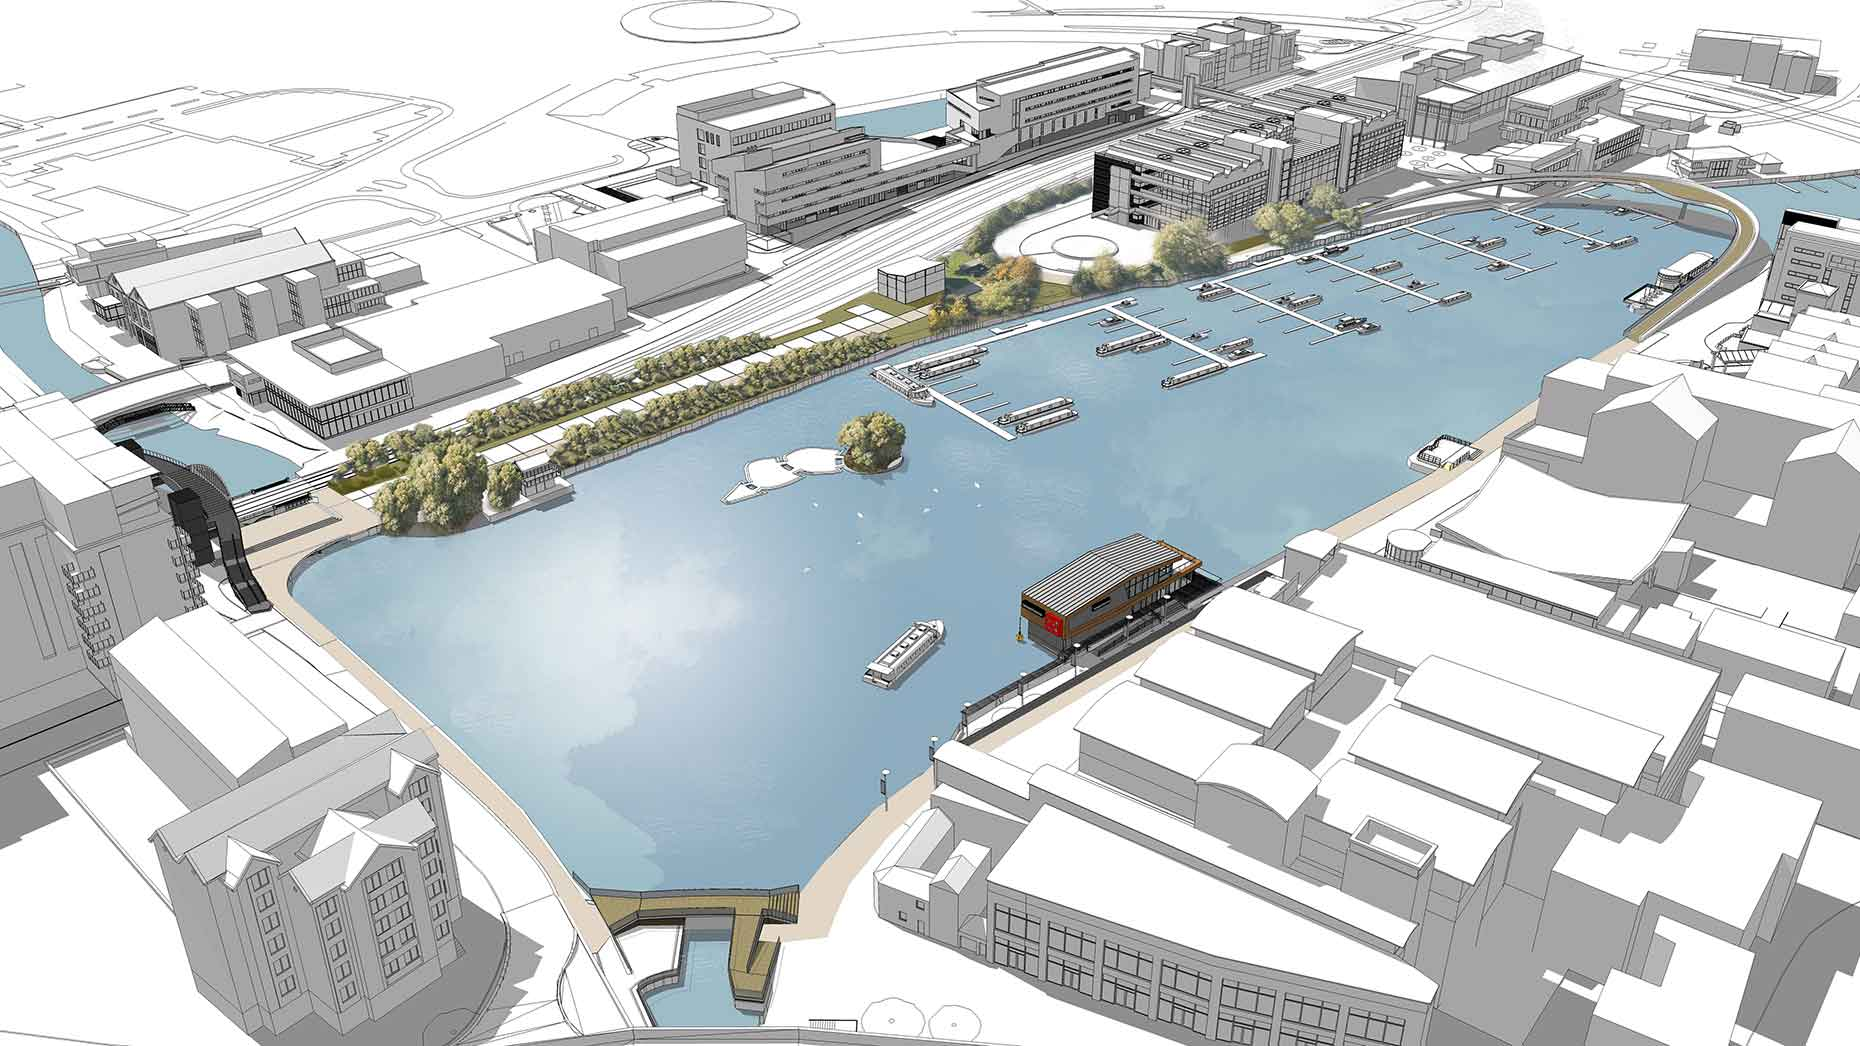 Vision Set Out For Brayford Pool Improvements In Lincoln